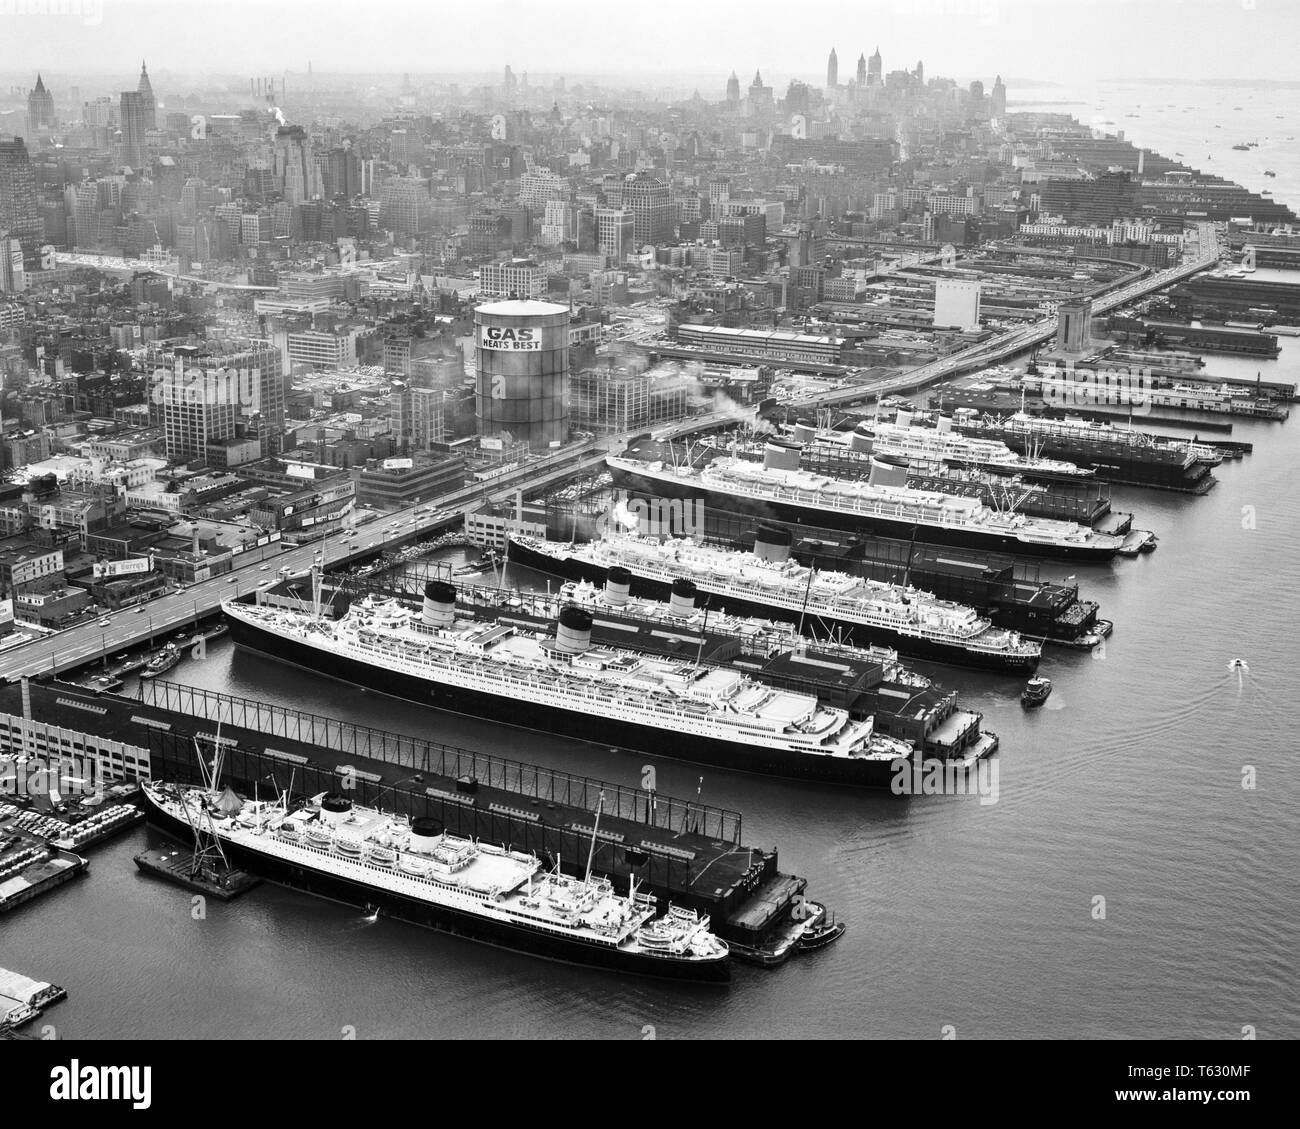 1950s EIGHT PASSENGER SHIPS ALL LUXURY OCEAN LINERS DOCKED ON HUDSON RIVER SIDE OF MANHATTAN ISLAND NEW YORK CITY NY USA - s786 HAR001 HARS OCEAN LINERS EIGHT OCEAN LINER AERIAL VIEW BLACK AND WHITE HAR001 HUDSON RIVER LINERS OCEAN GOING OLD FASHIONED RARE VESSEL - Stock Image